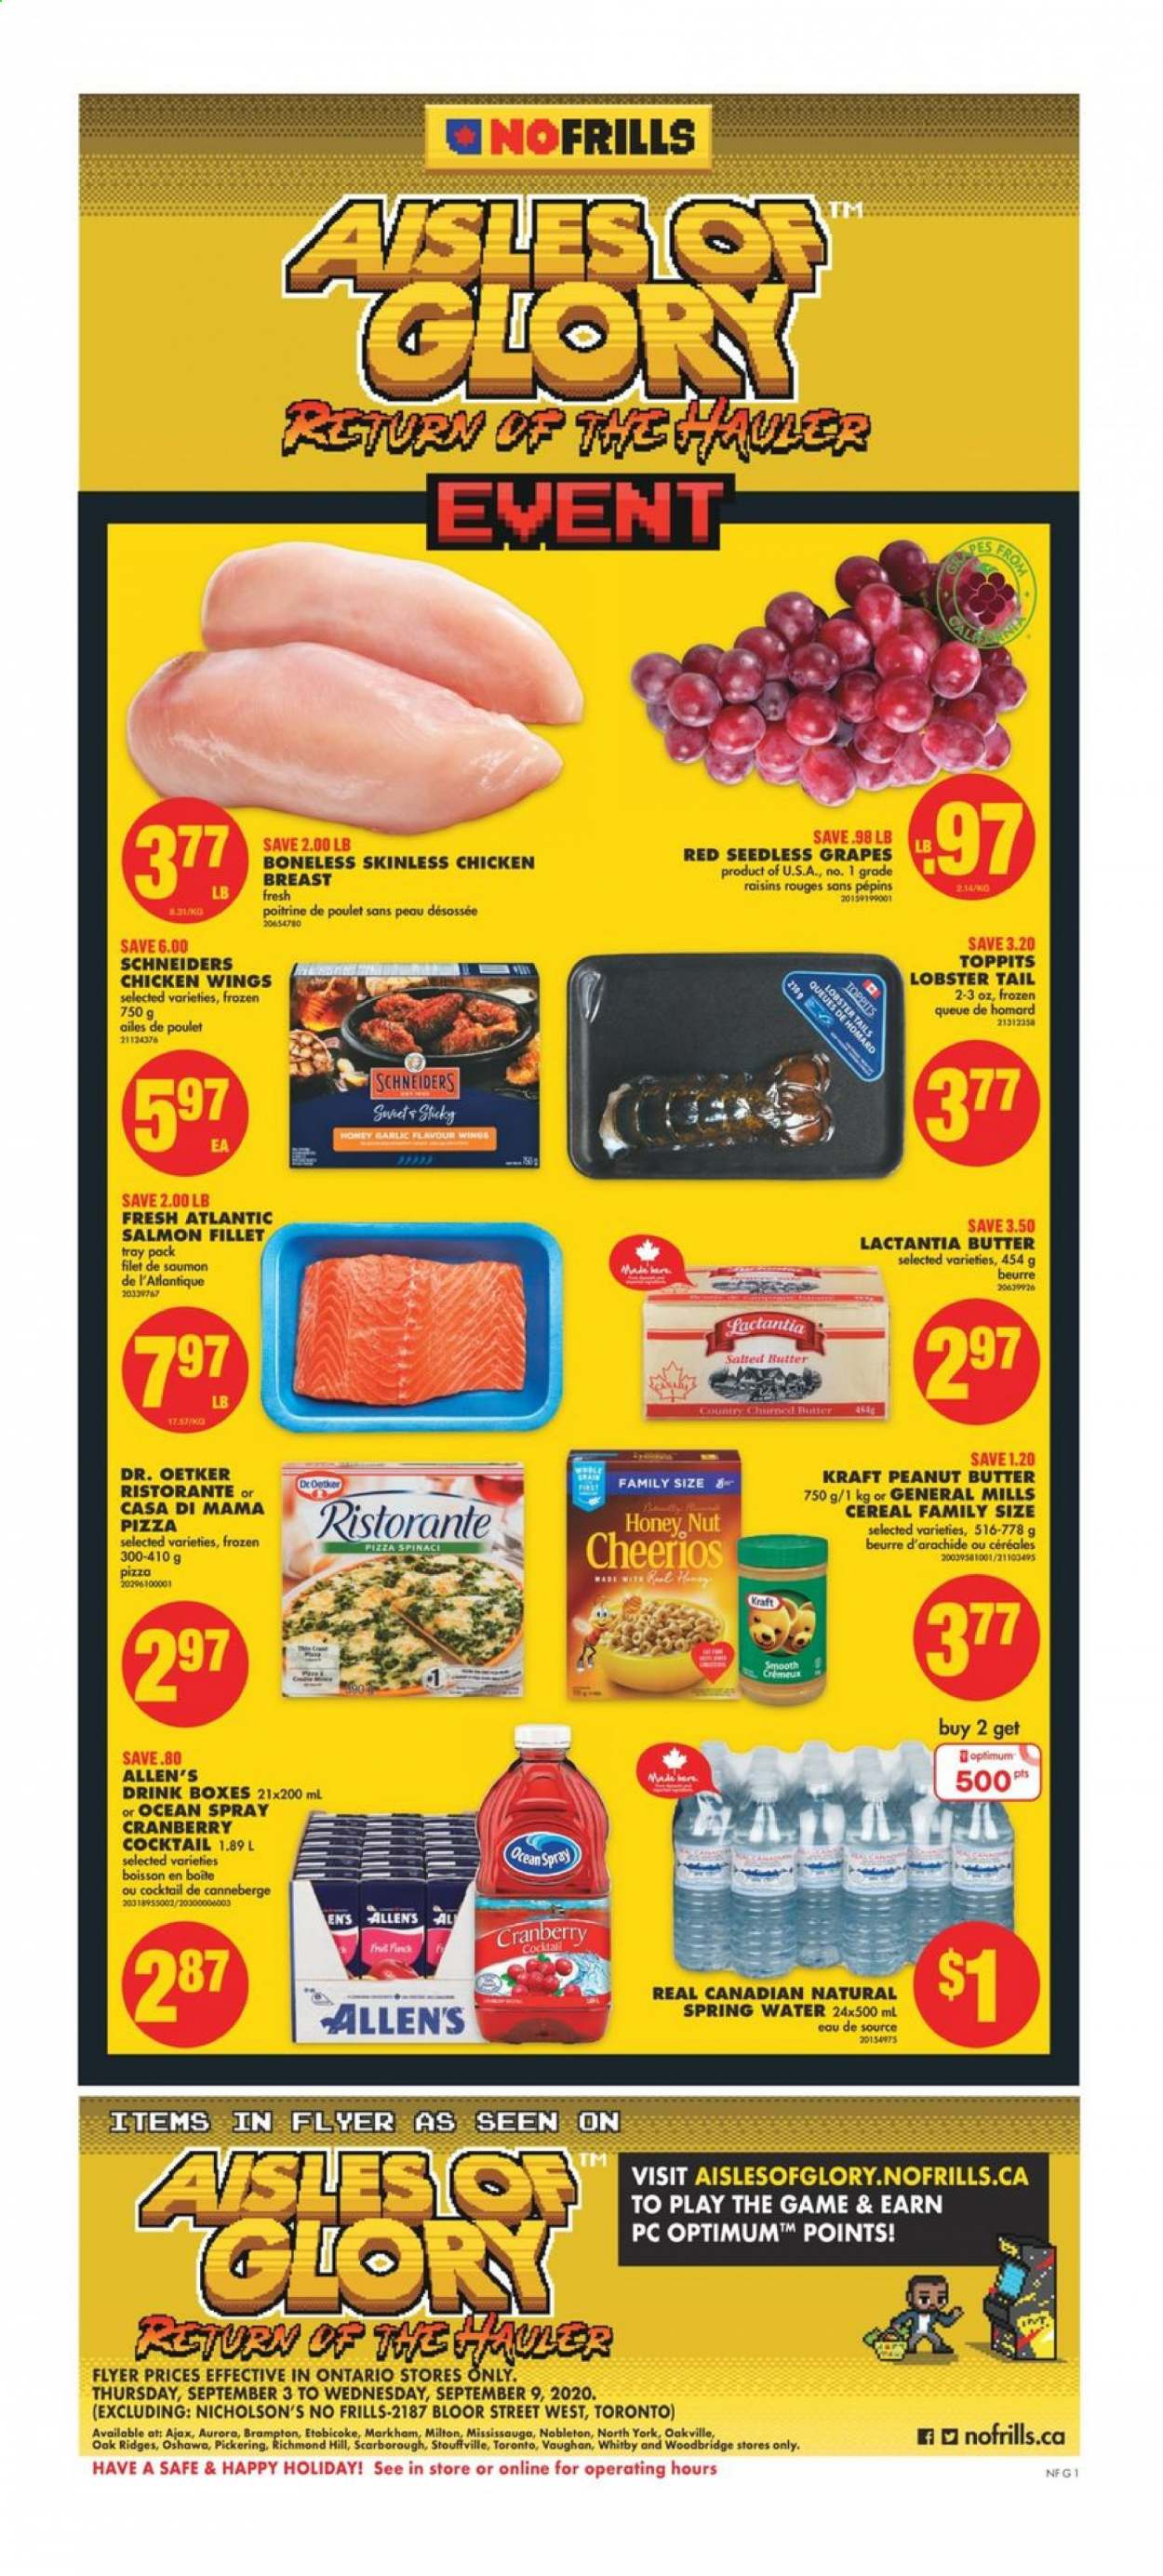 No Frills Flyer - September 03, 2020 - September 09, 2020 - Sales products - butter, cereals, frozen, garlic, gra, grapes, lobster, lobster tails, raisins, safe, salmon, salmon fillet, seedless grapes, spring water, tray, honey, pizza, cheerios, chicken, chicken breast, peanut butter, peanuts, chicken wings, game, smooth, cereal, poulet, saumon, beurre, beurre d'arachide, boisson, canneberge, eau, homard, madère, spring, box, drink, wings, cranberry, lobster tail. Page 1.